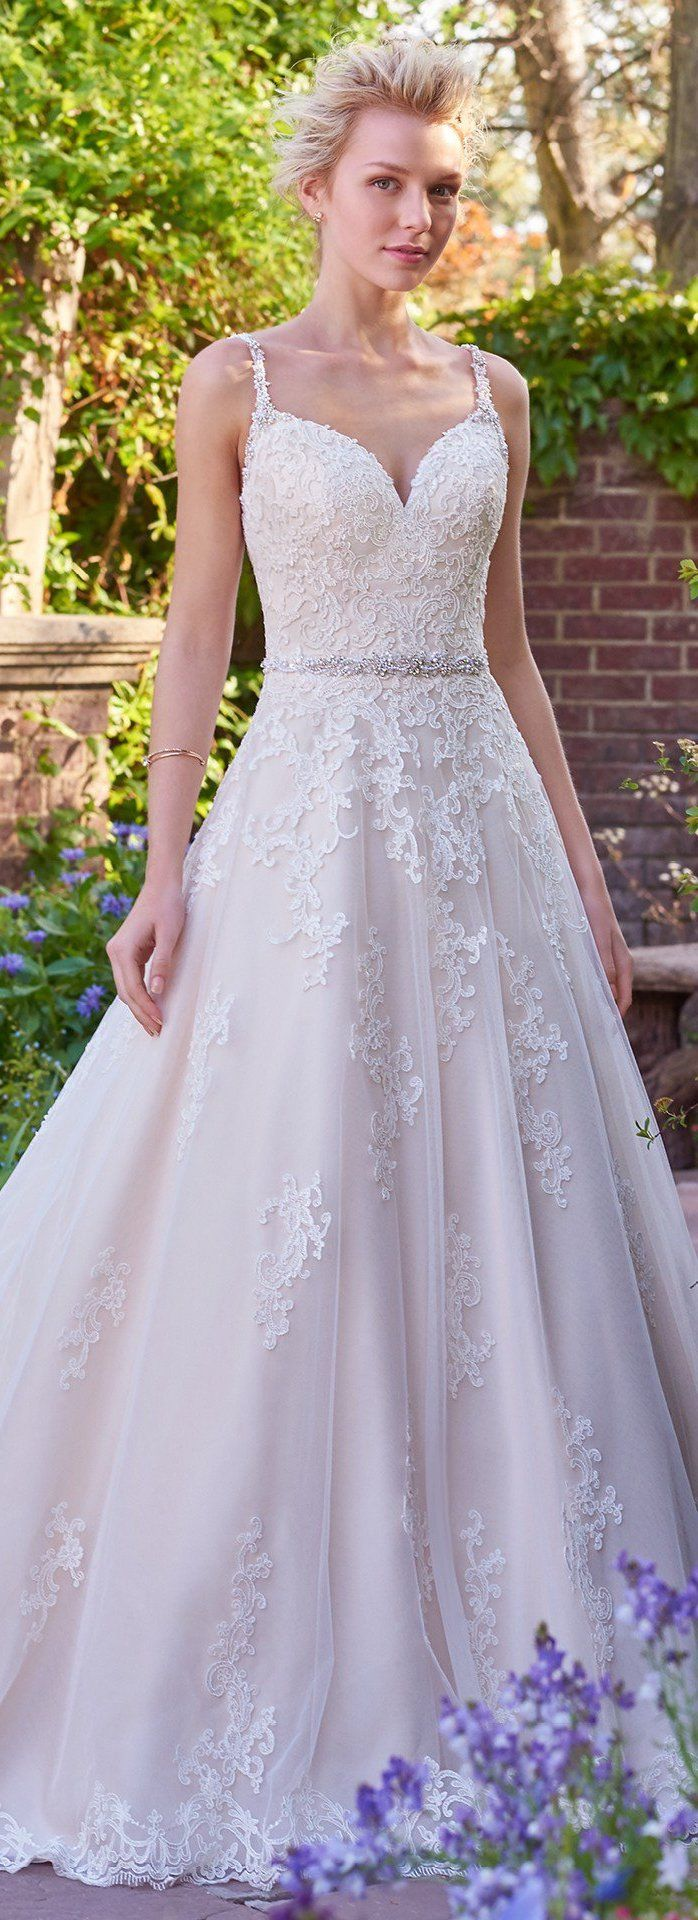 Maggie sottero wedding dresses wedding dress weddings and wedding maggie sottero wedding dresses ombrellifo Image collections